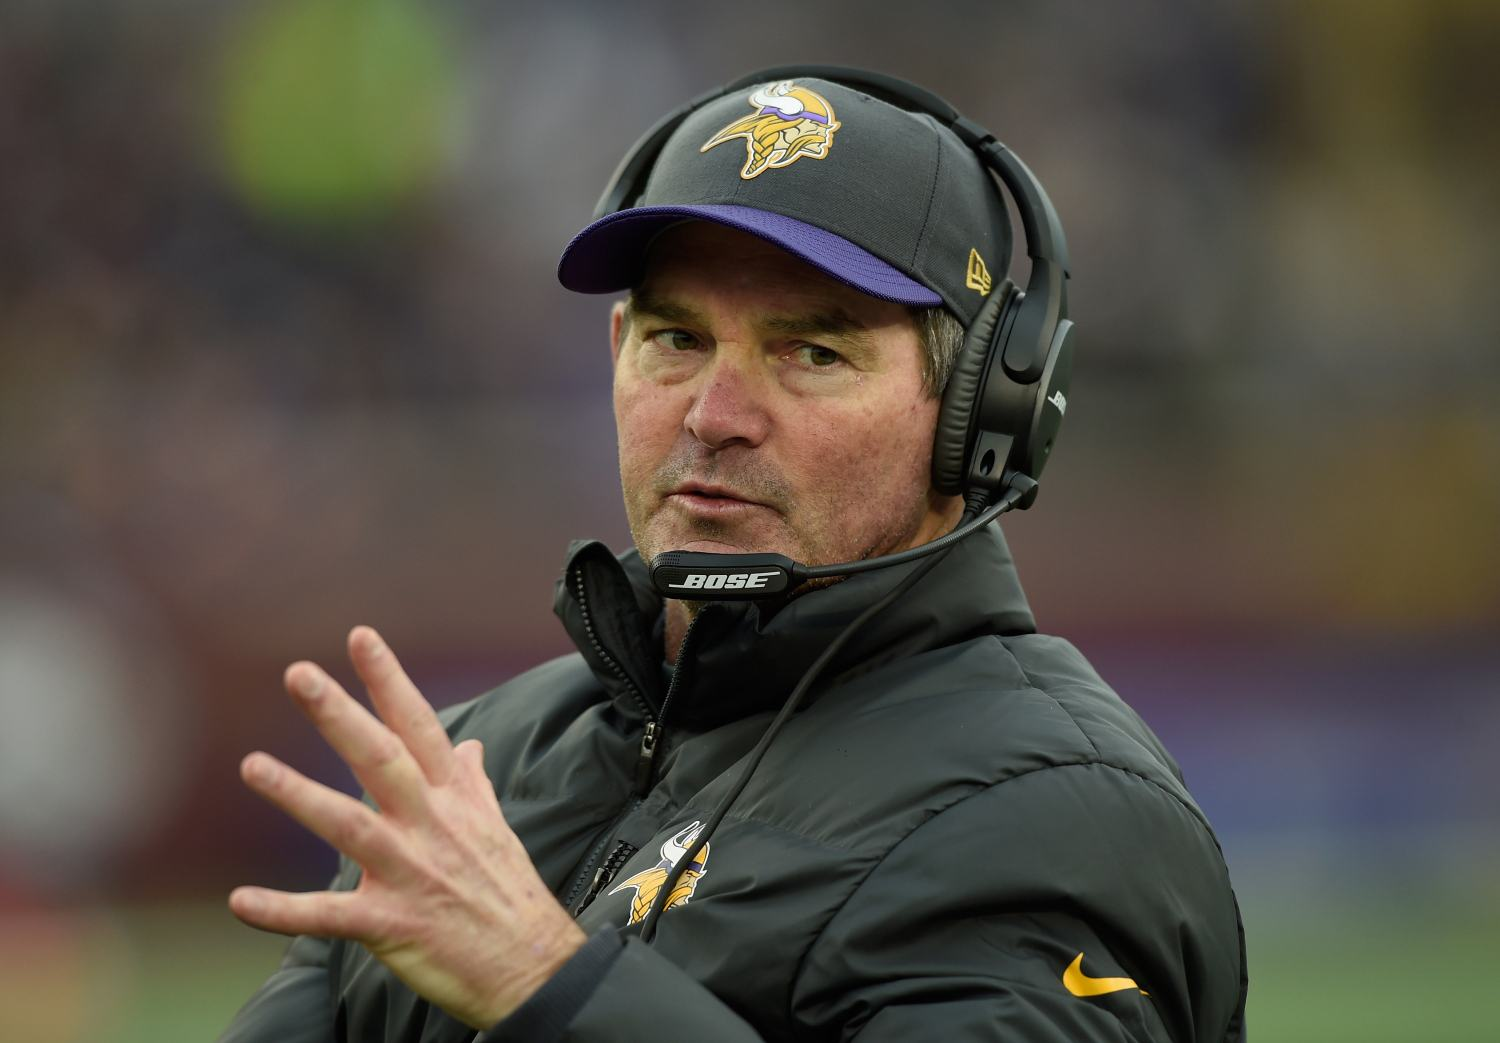 Cowboys Headlines - Vikings Head Coach Mike Zimmer Compares 2016 Cowboys to 90's Dynasty 1